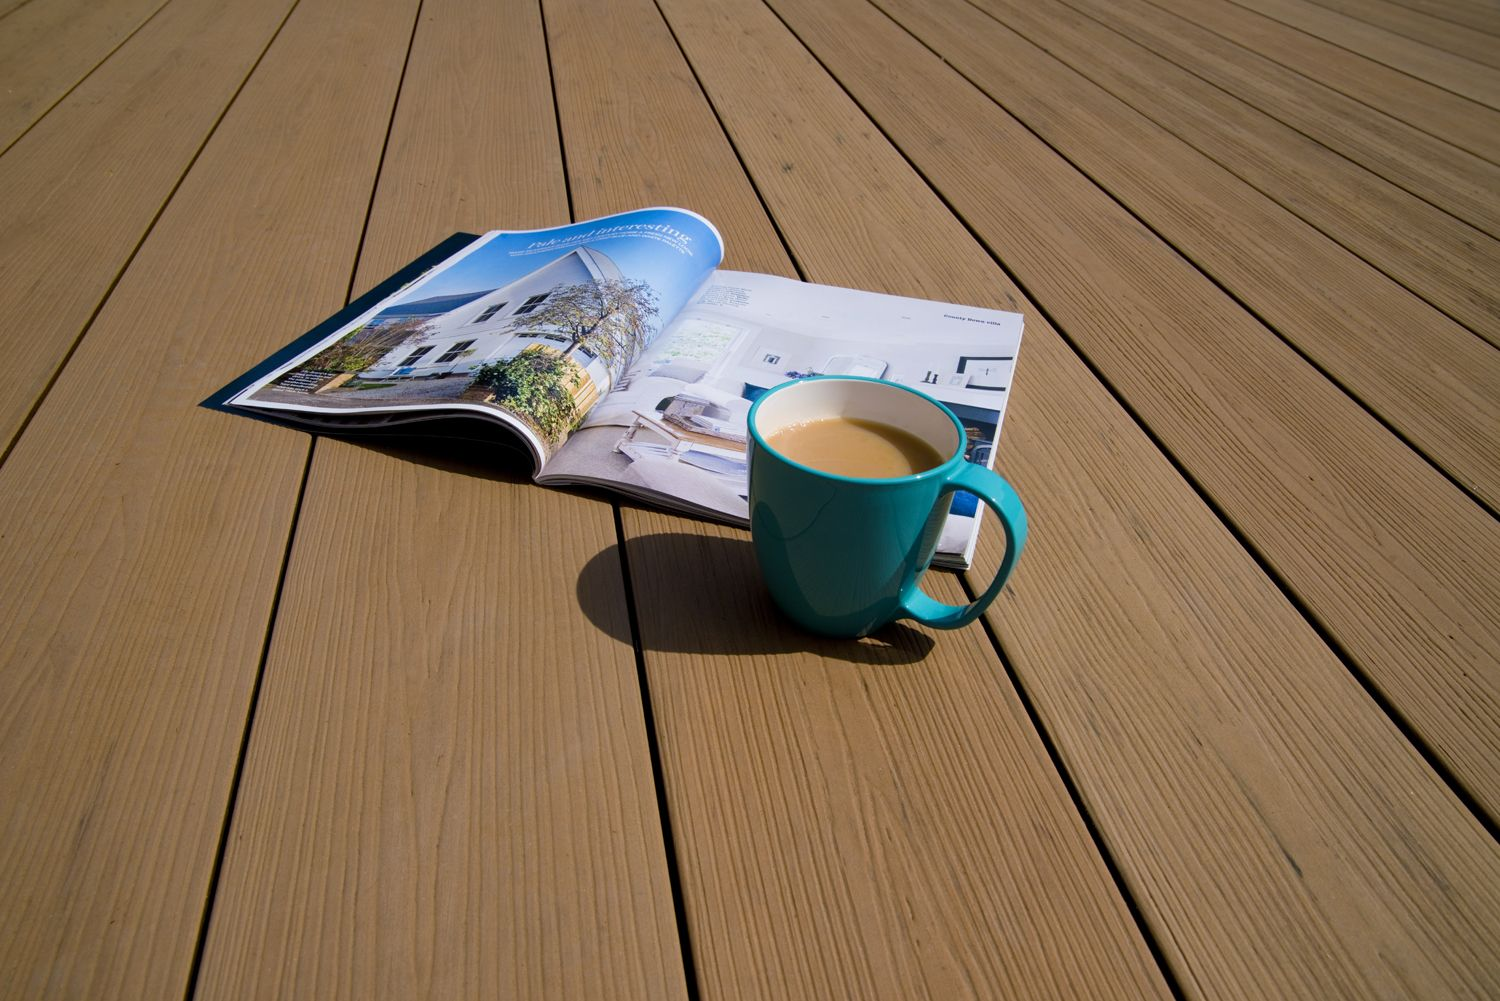 Megawood Barfußdiele Dura Composite Decking Oak Products Decking Composite Decking